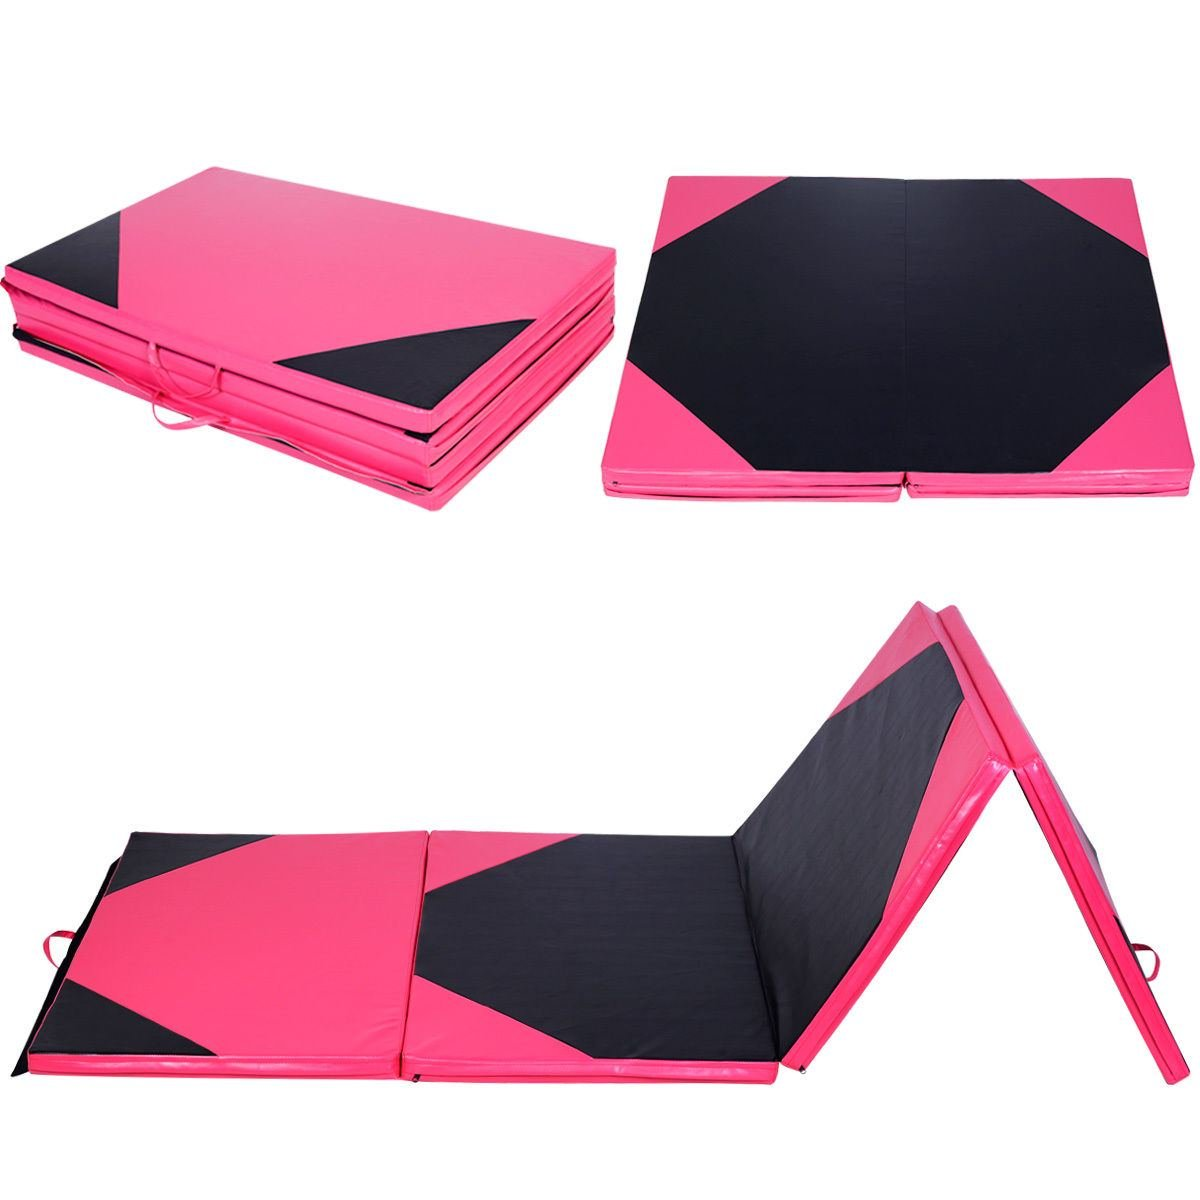 Thick Folding Panel Gymnastics Mat 4'x10'x2'' Gym Fitness Exercise Pink & Black